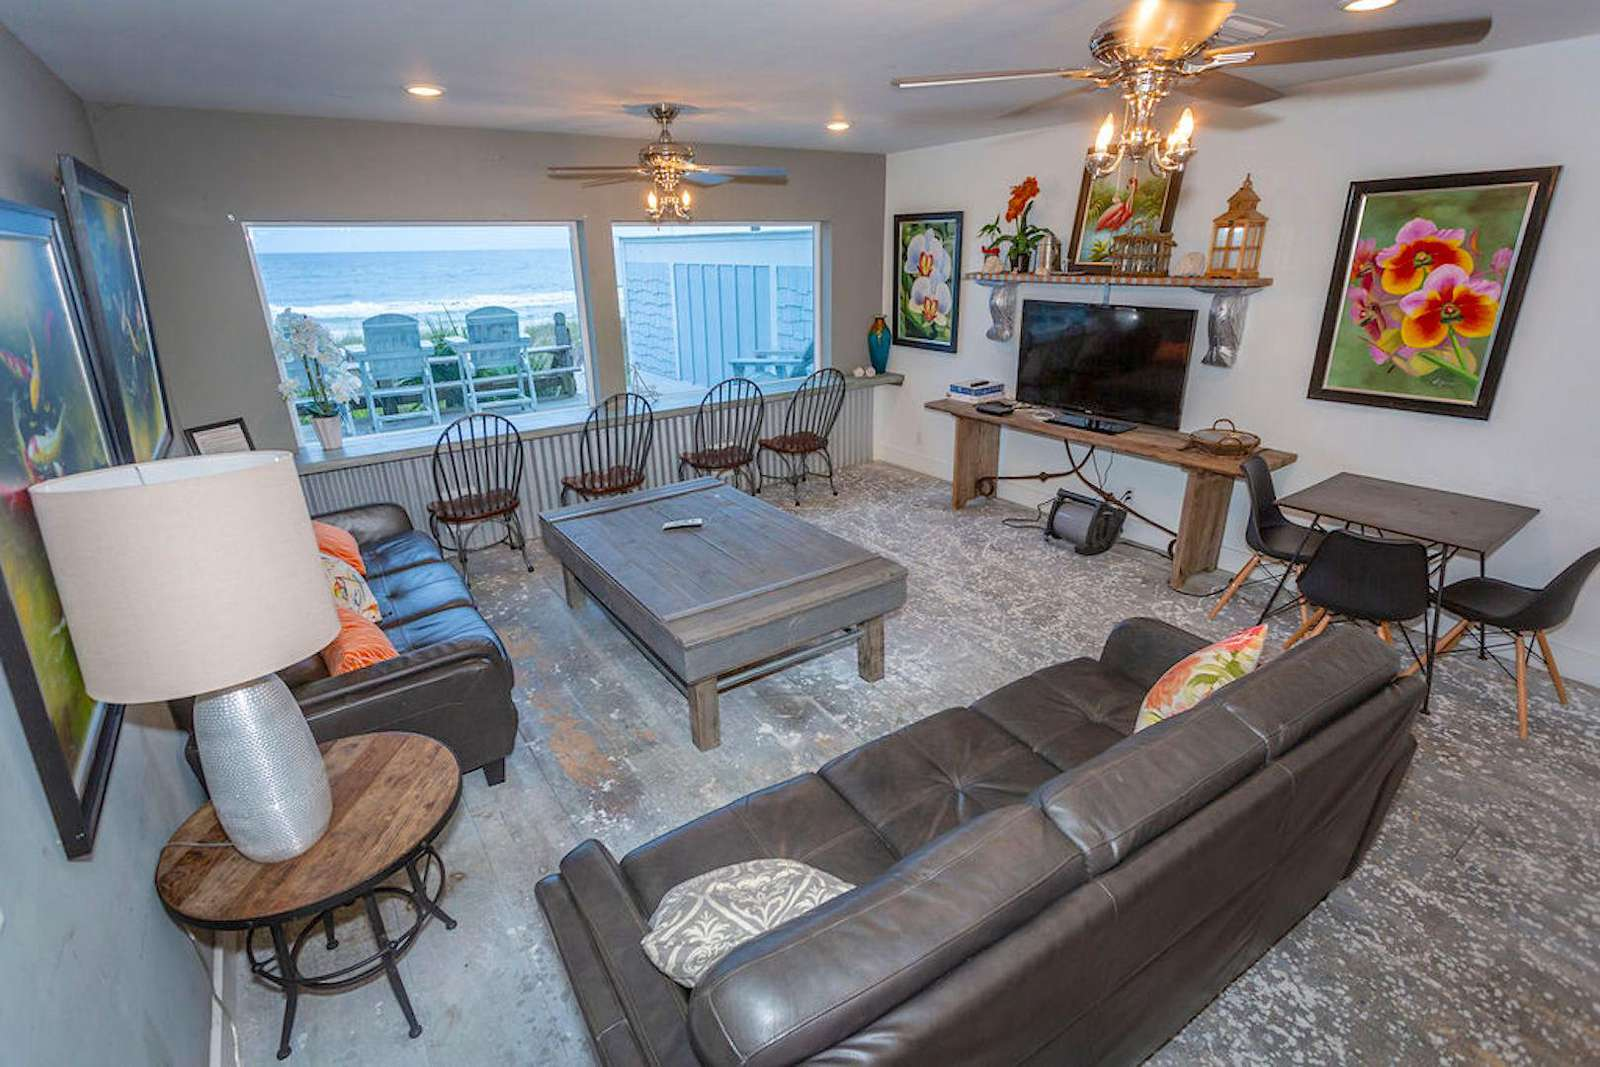 family room with 2 large sofas, flat screen, bar table with 4 chairs, card table with 4 chairs,